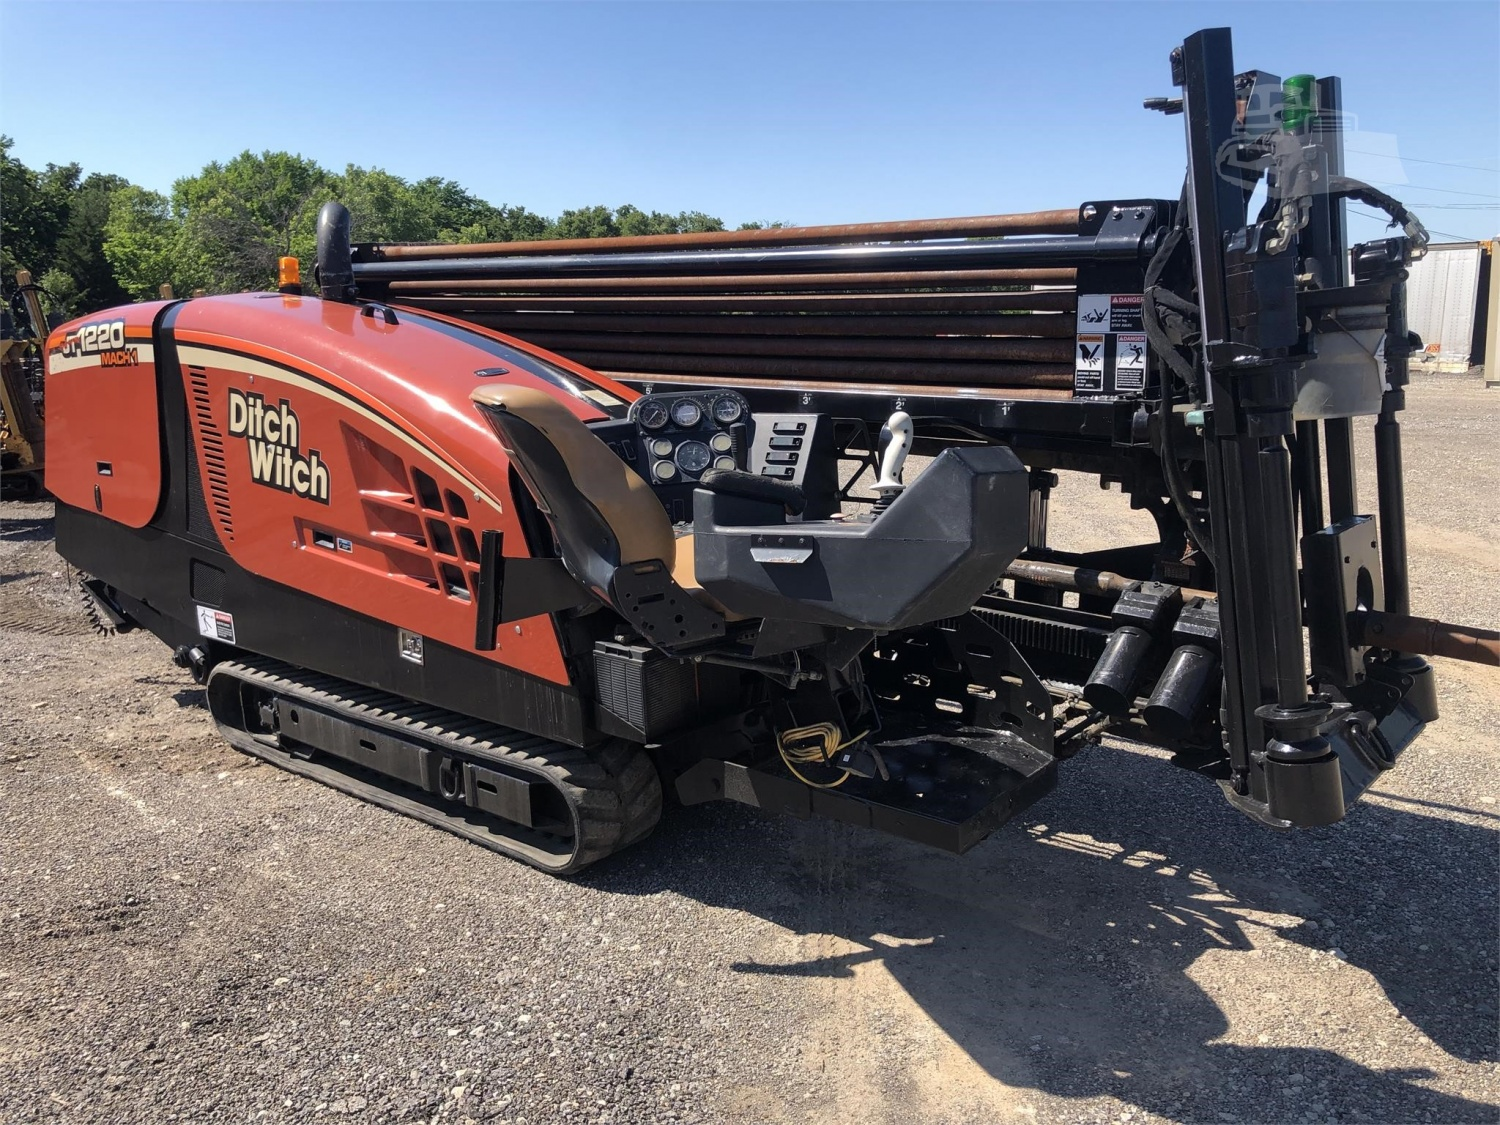 Буровая установка Ditch Witch JT1220 Mach 2013 года